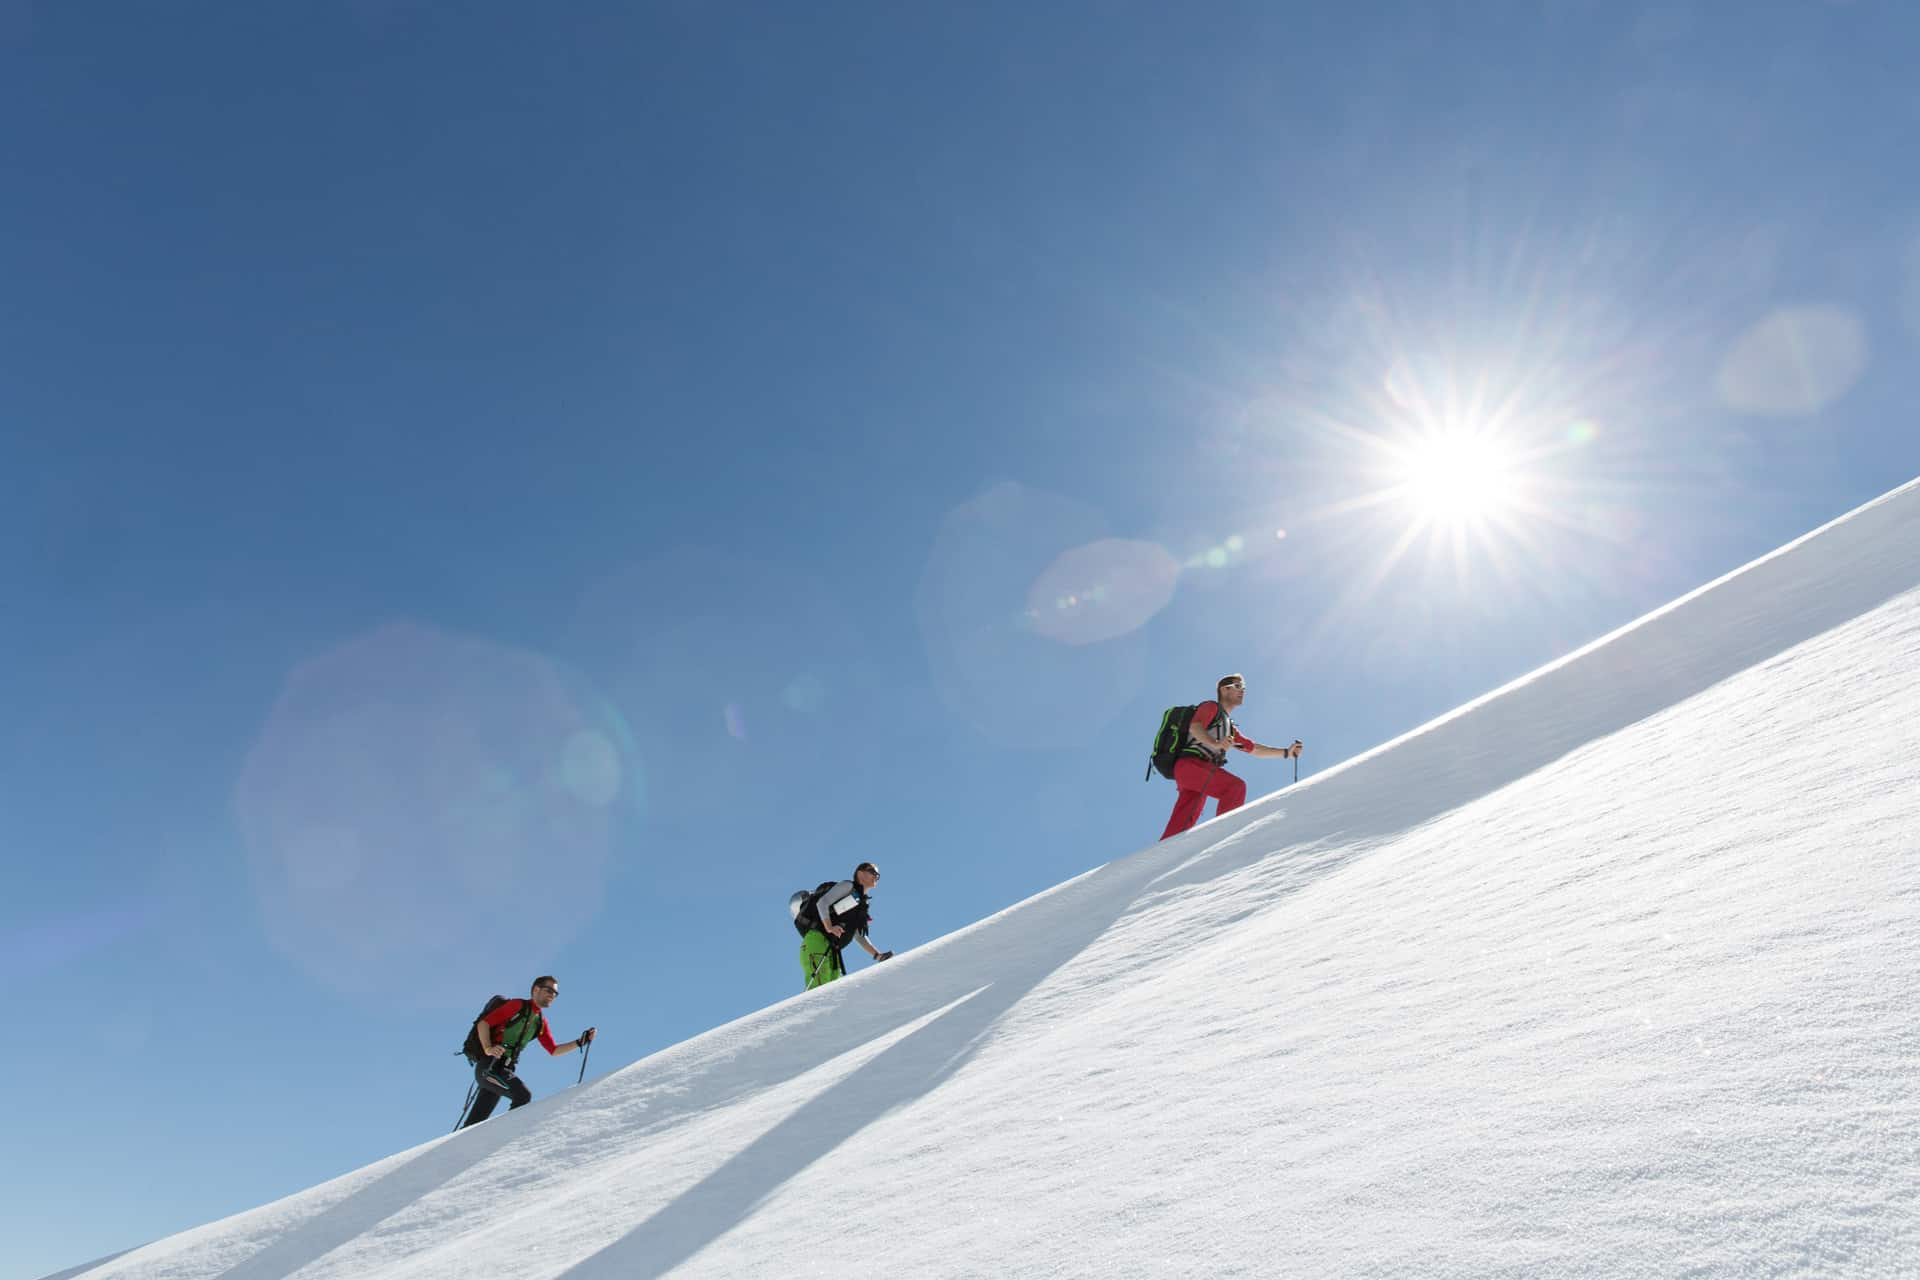 freeride st.anton arlberg off piste skiing mountain guide piste to powder ski guide backcountry powder skiing